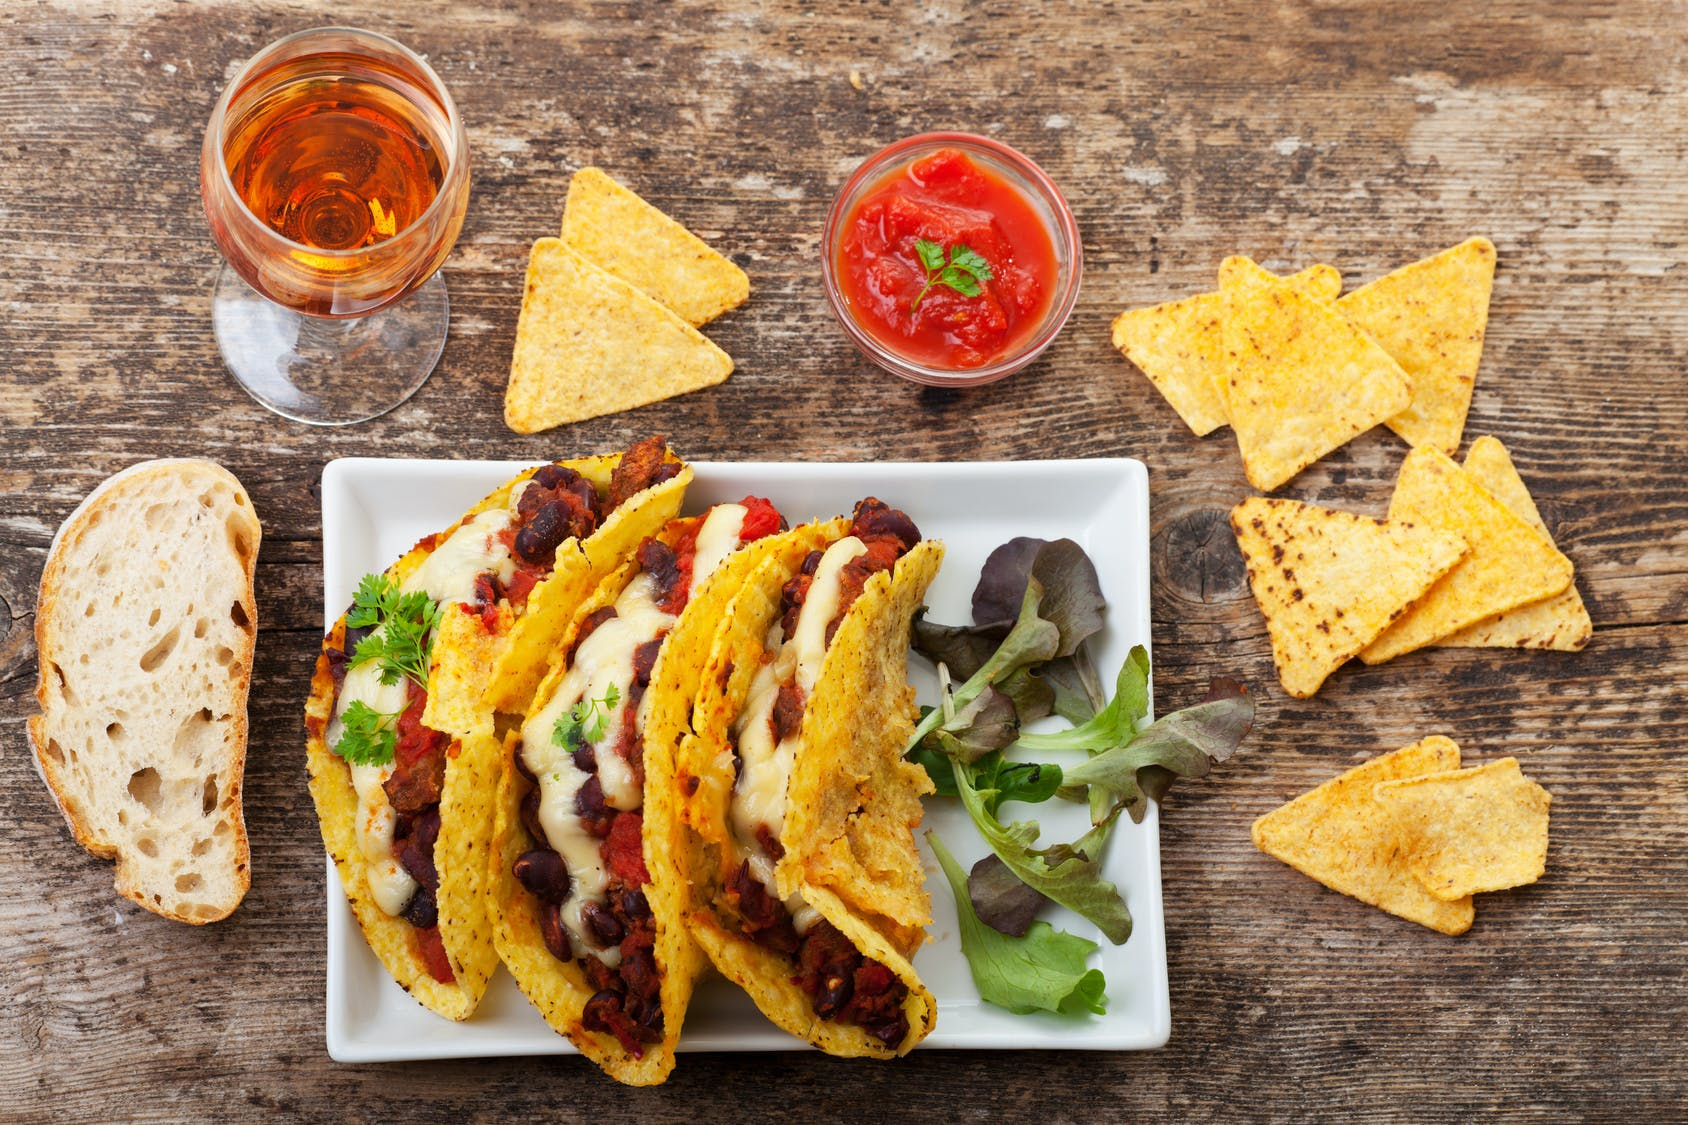 Up your lunch game with tasty tacos!